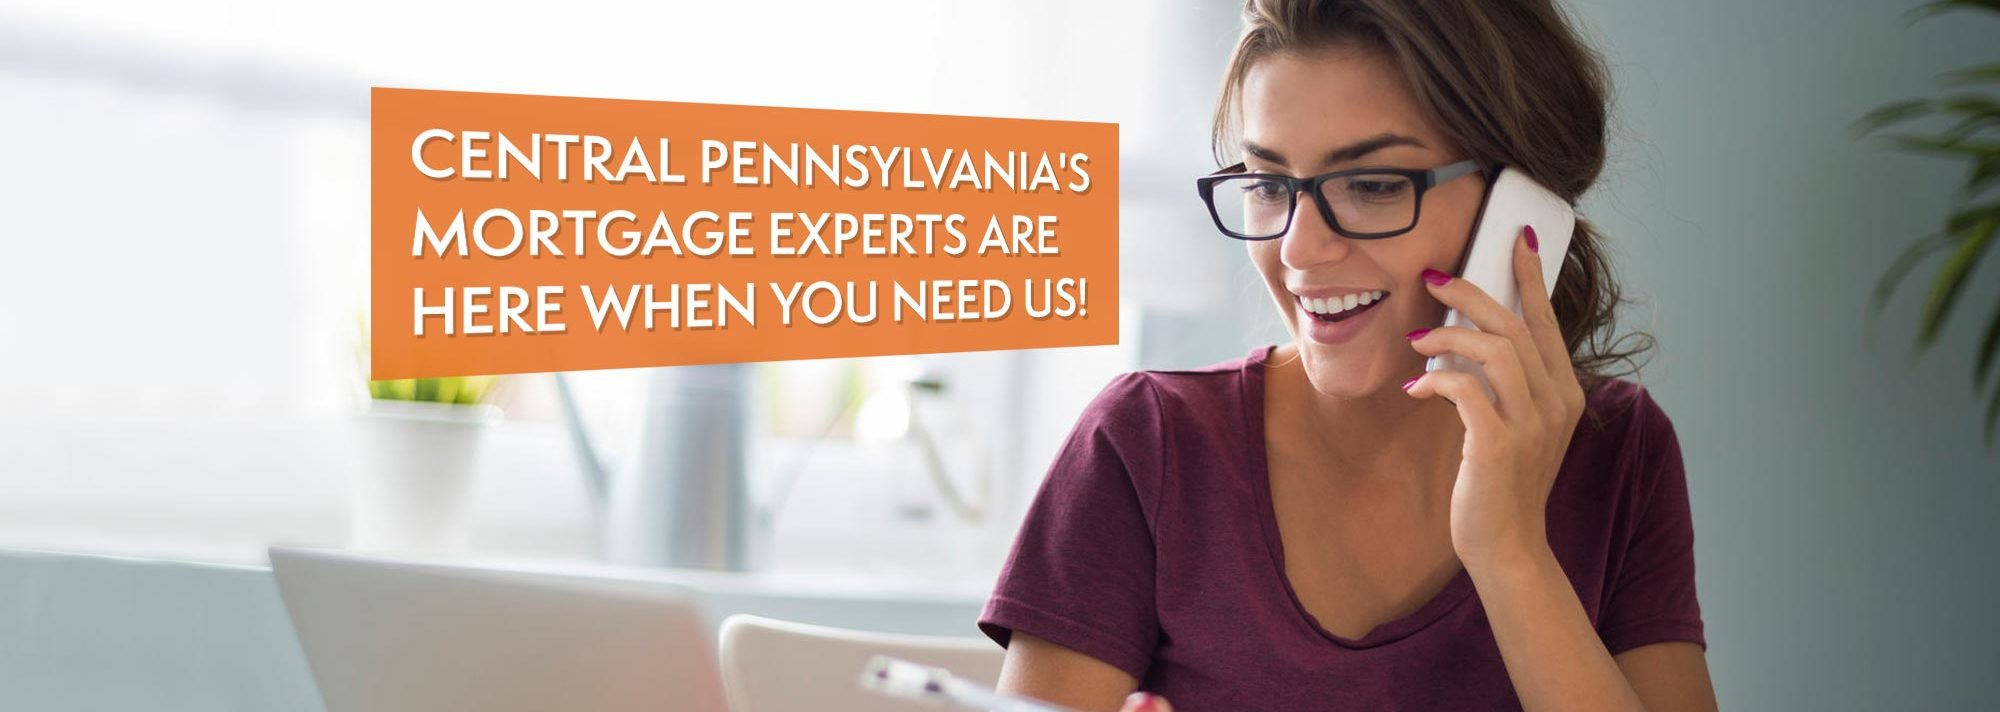 Central Pennsylvania's Mortgage Experts Are Here When You Need Us!